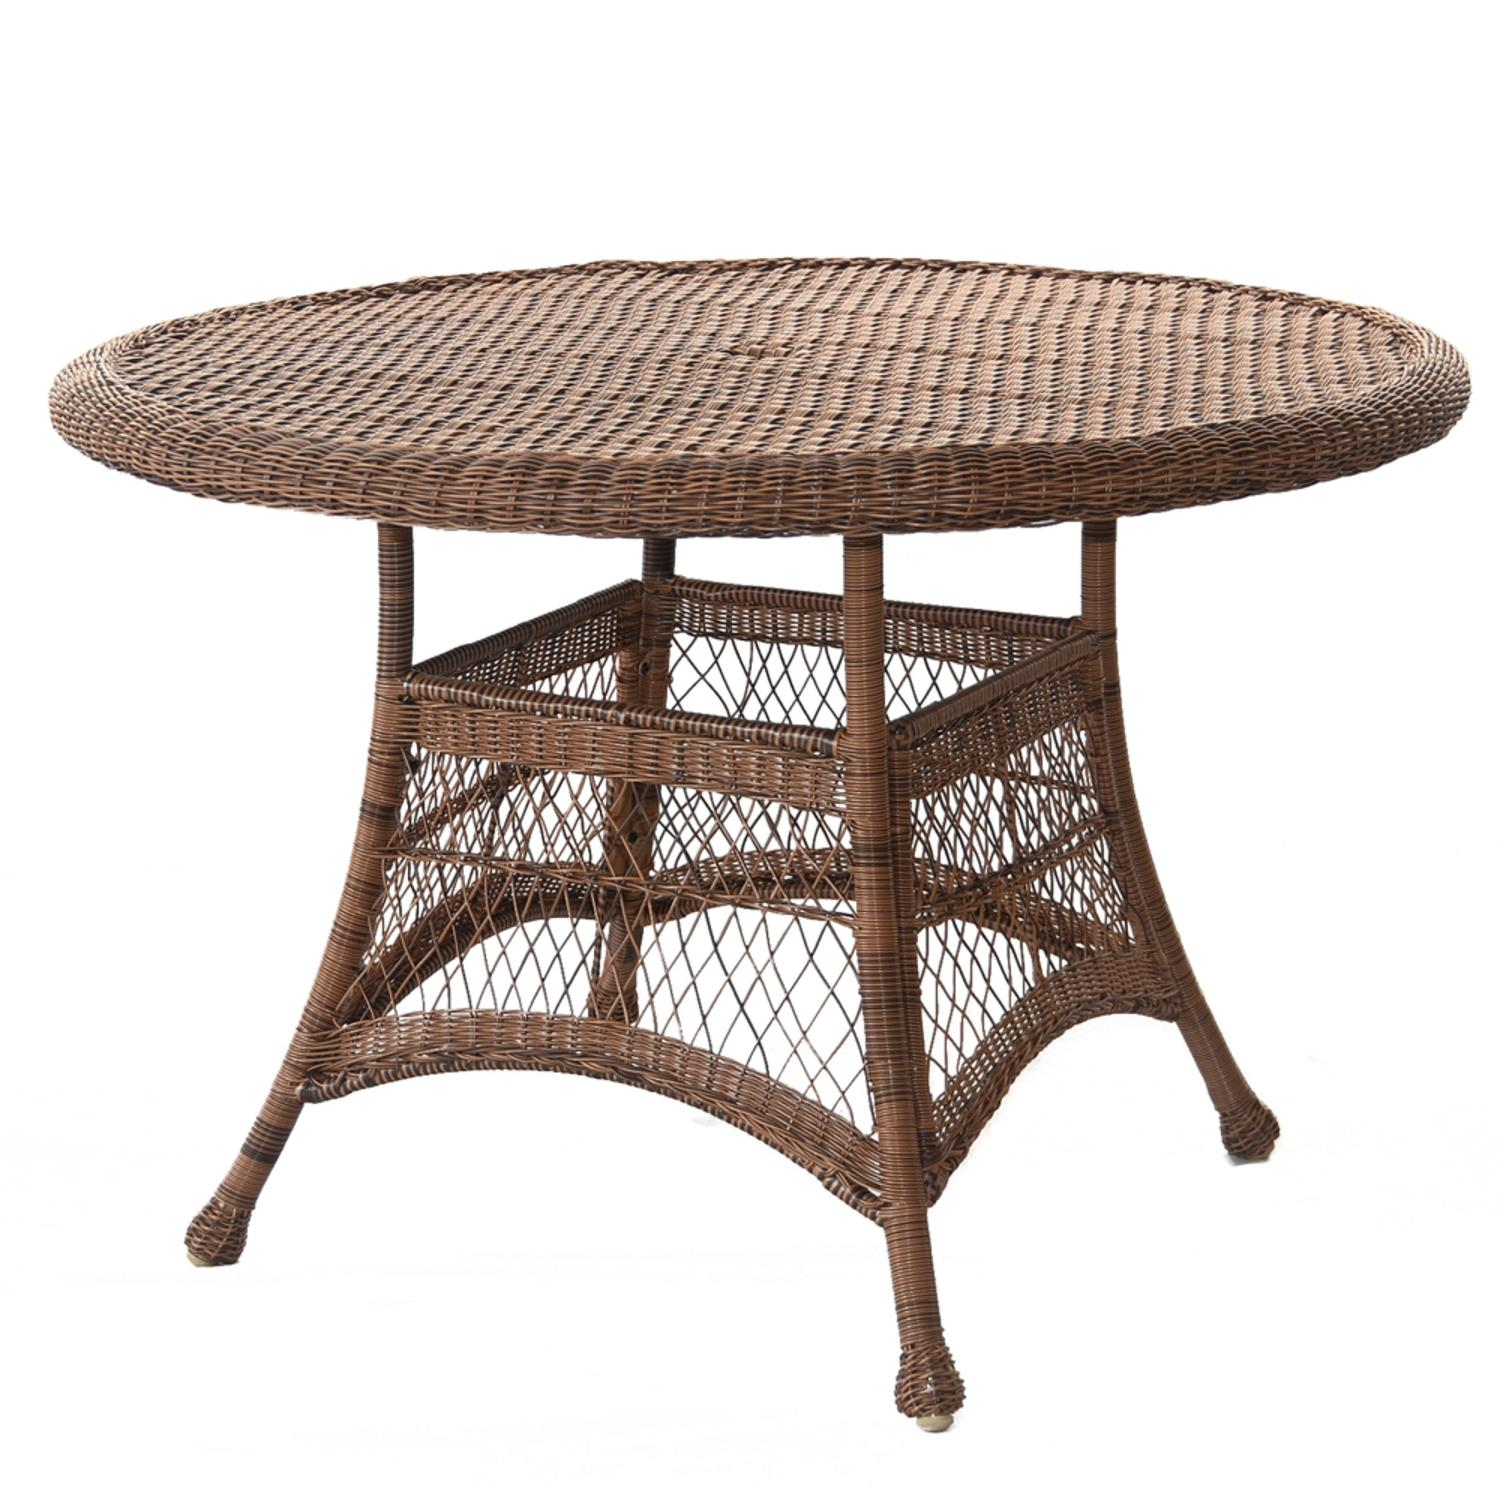 5 piece honey resin wicker chair table patio dining for Best deals on patio furniture sets